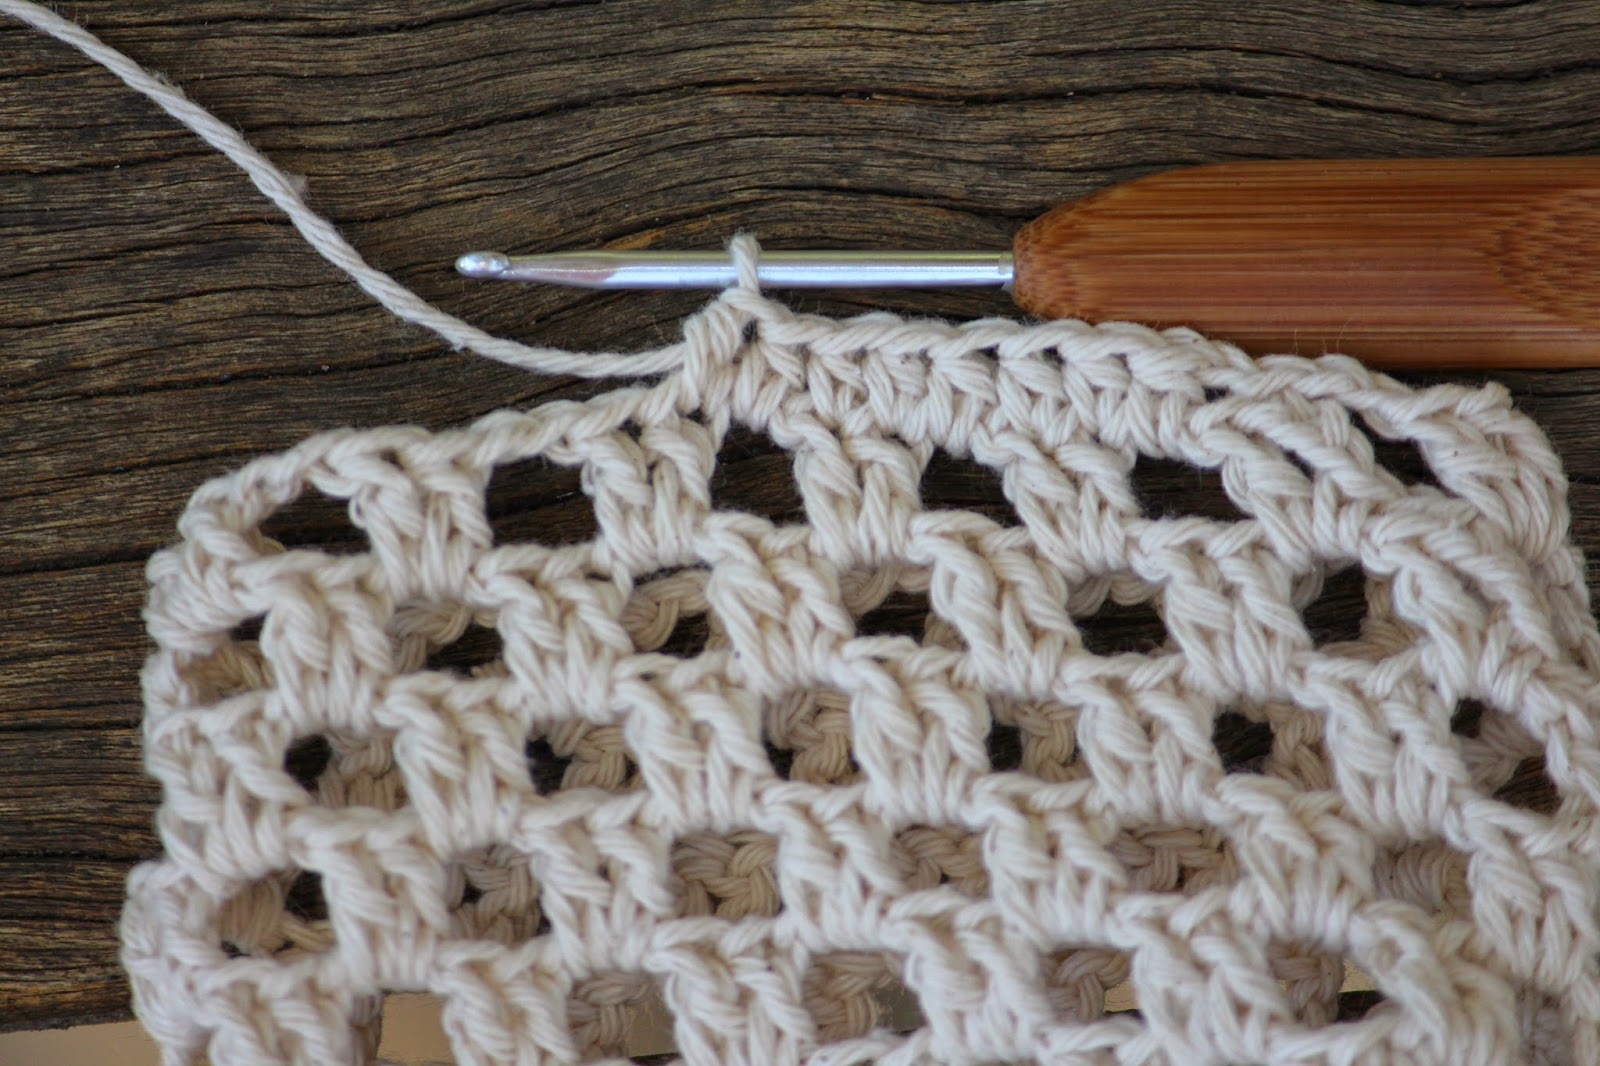 Crochet Stitches Htr : rounds : Chain 2, 1 Htr into each Htr, Join with a slip stitch ...